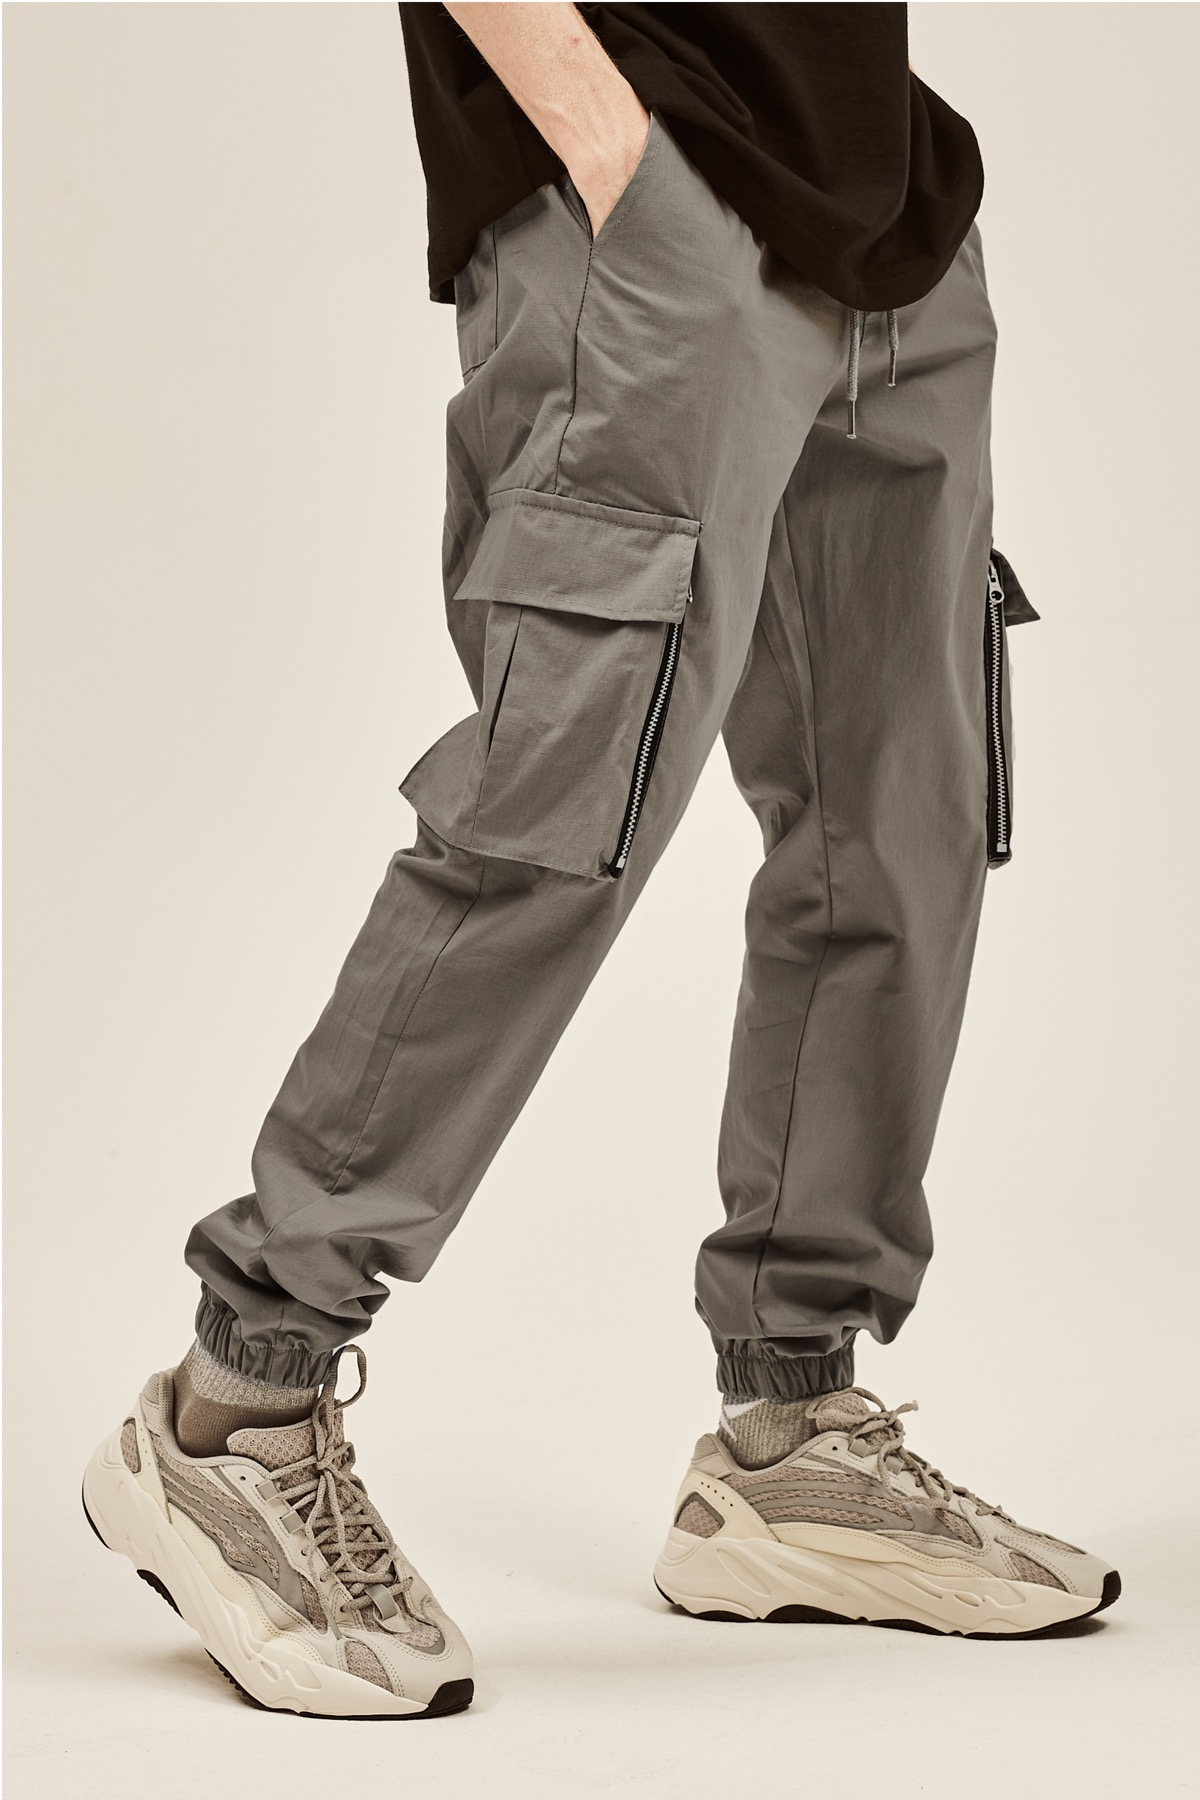 GRAY CARGO ZIPPER JOG PANTS V2